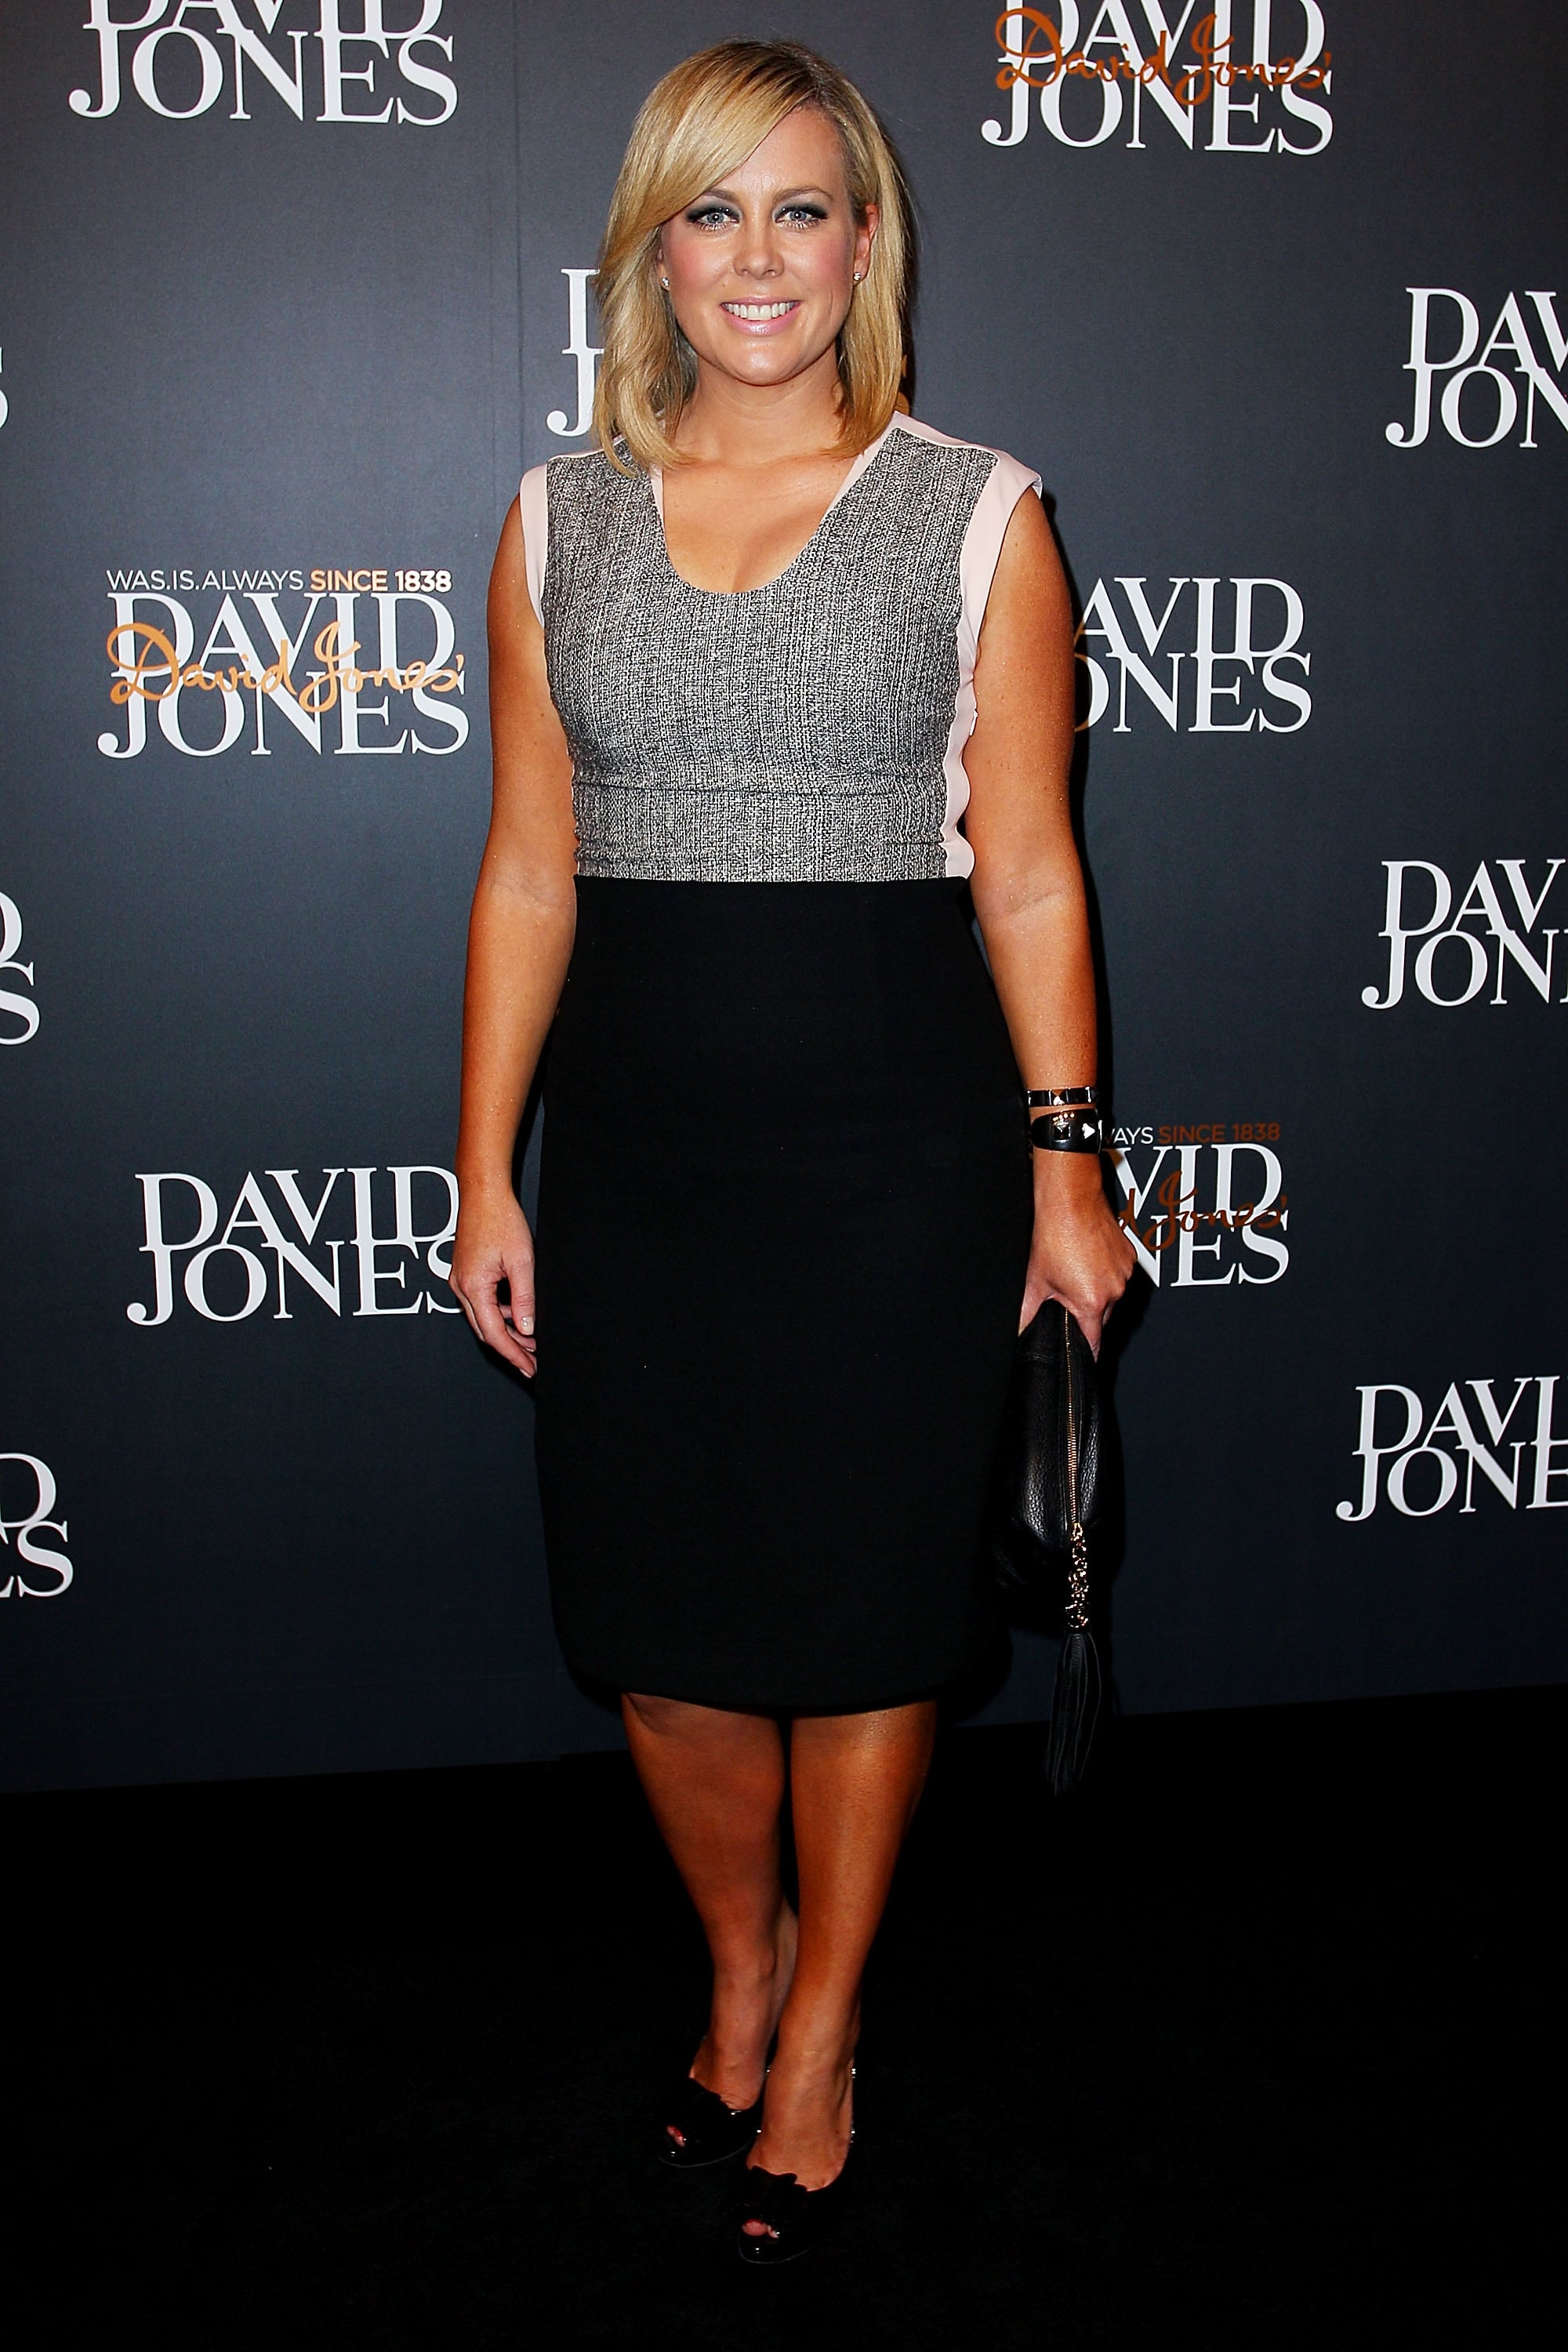 Russell Crowe and Samantha Armytage flirt their way